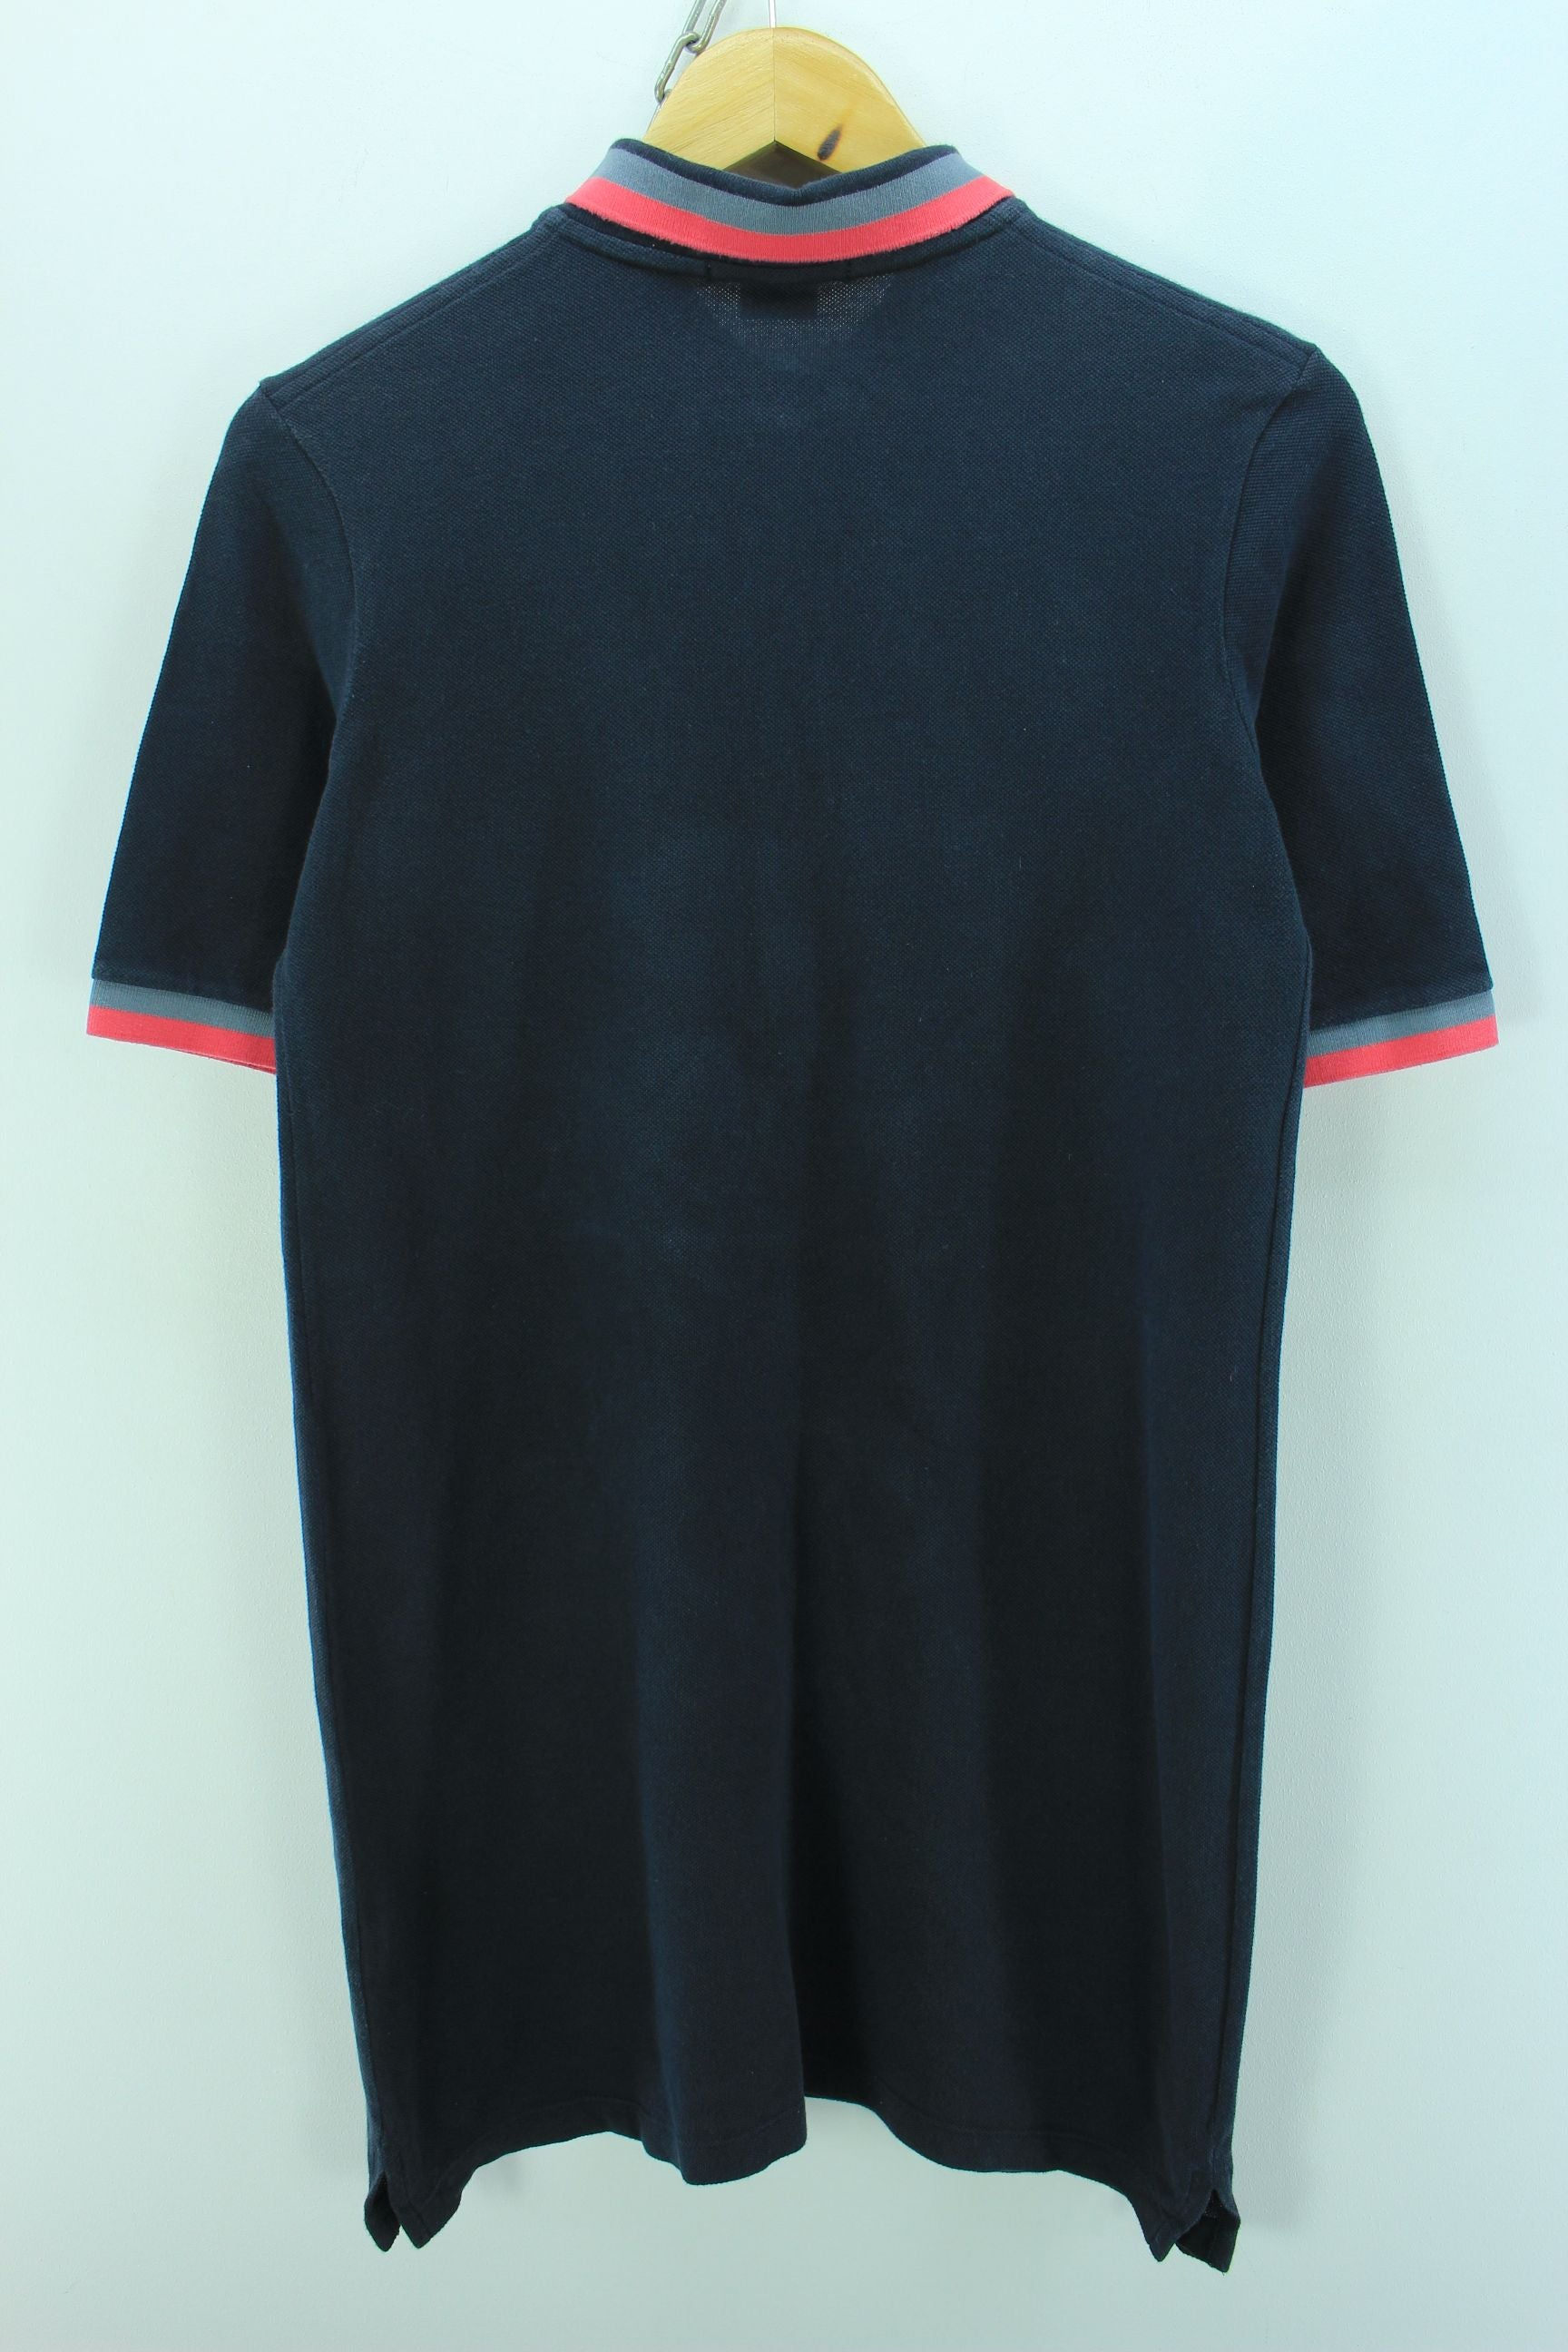 details for authentic men/man Mens Vintage Polo Shirts, Branded Coats and Jackets In UK ...